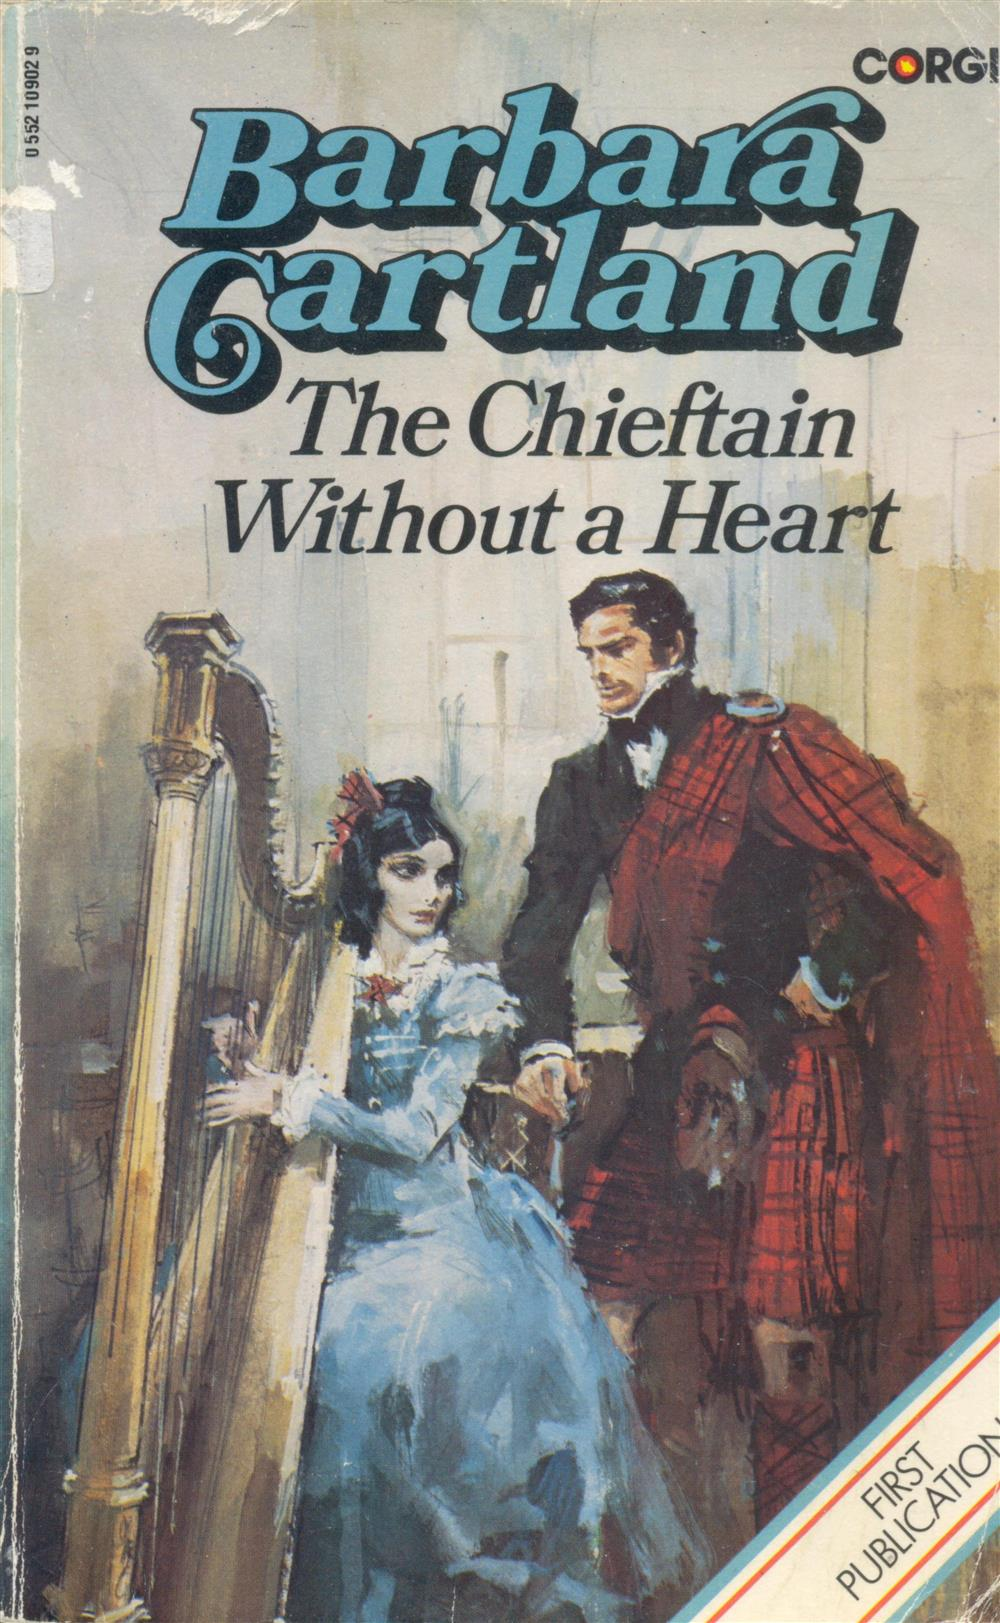 The chieftain without a heart 001.jpg